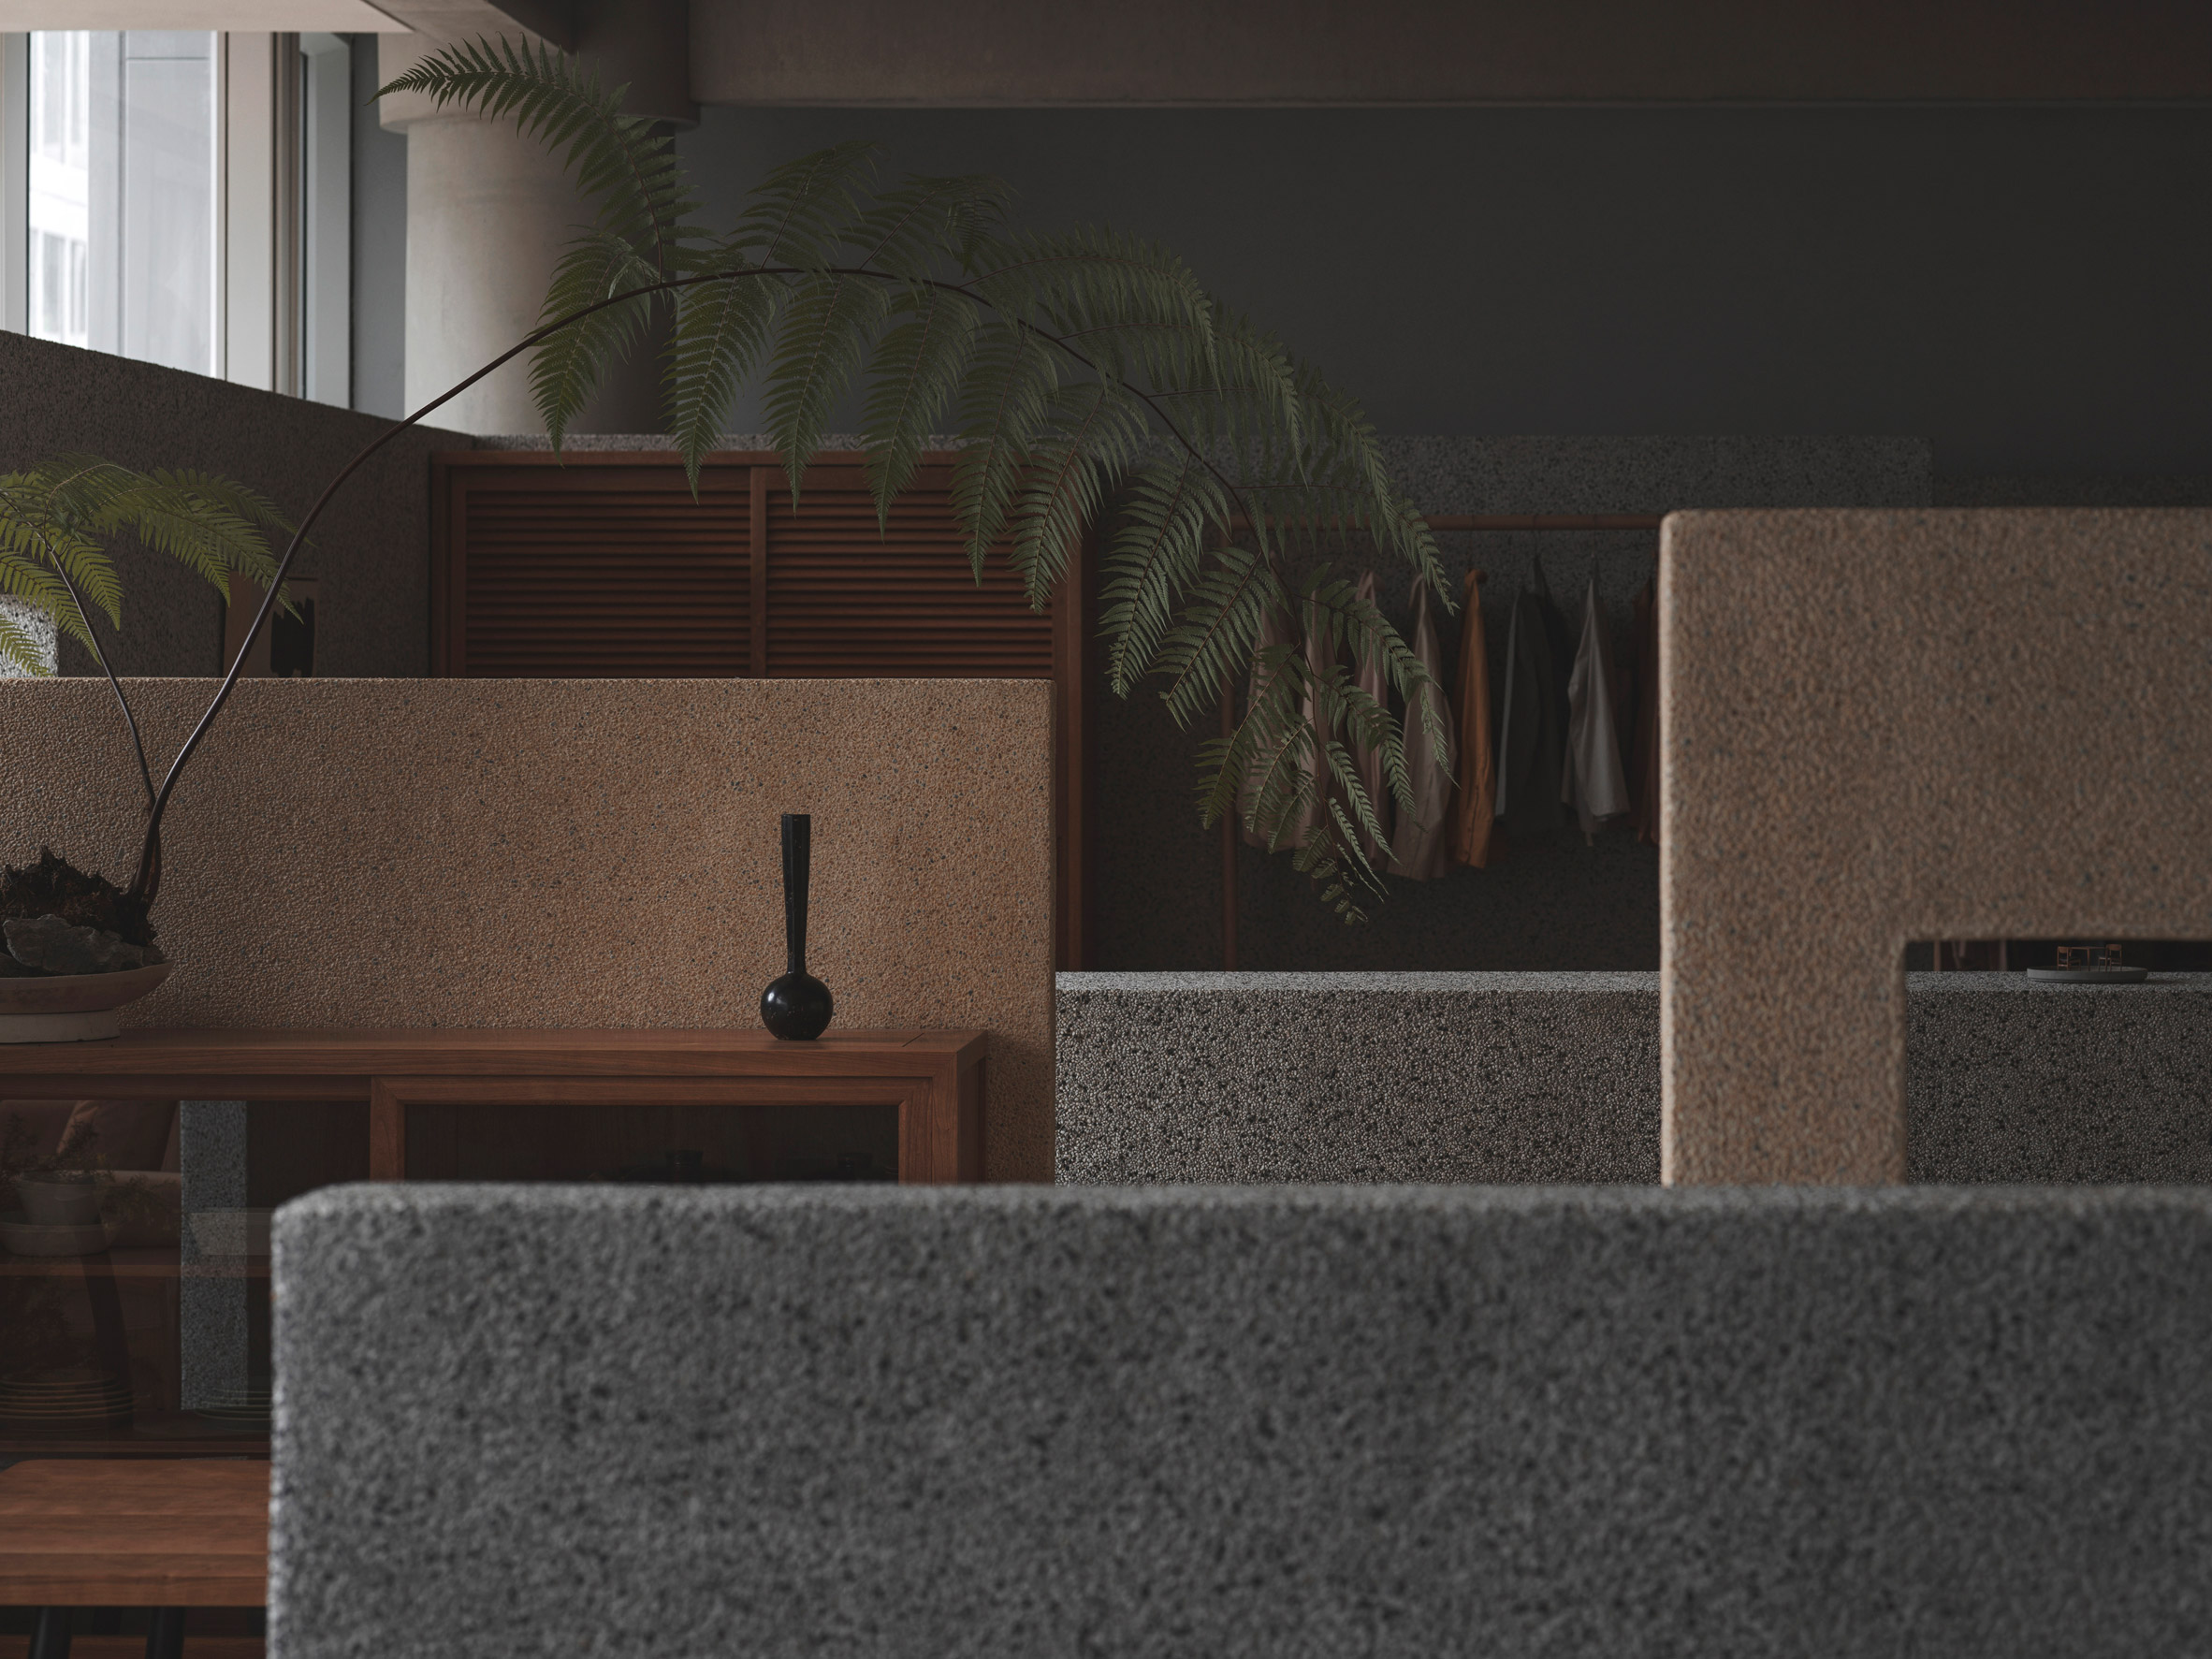 Washed stone partition walls in grey and beige in store interior by BLUE Architecture Studio